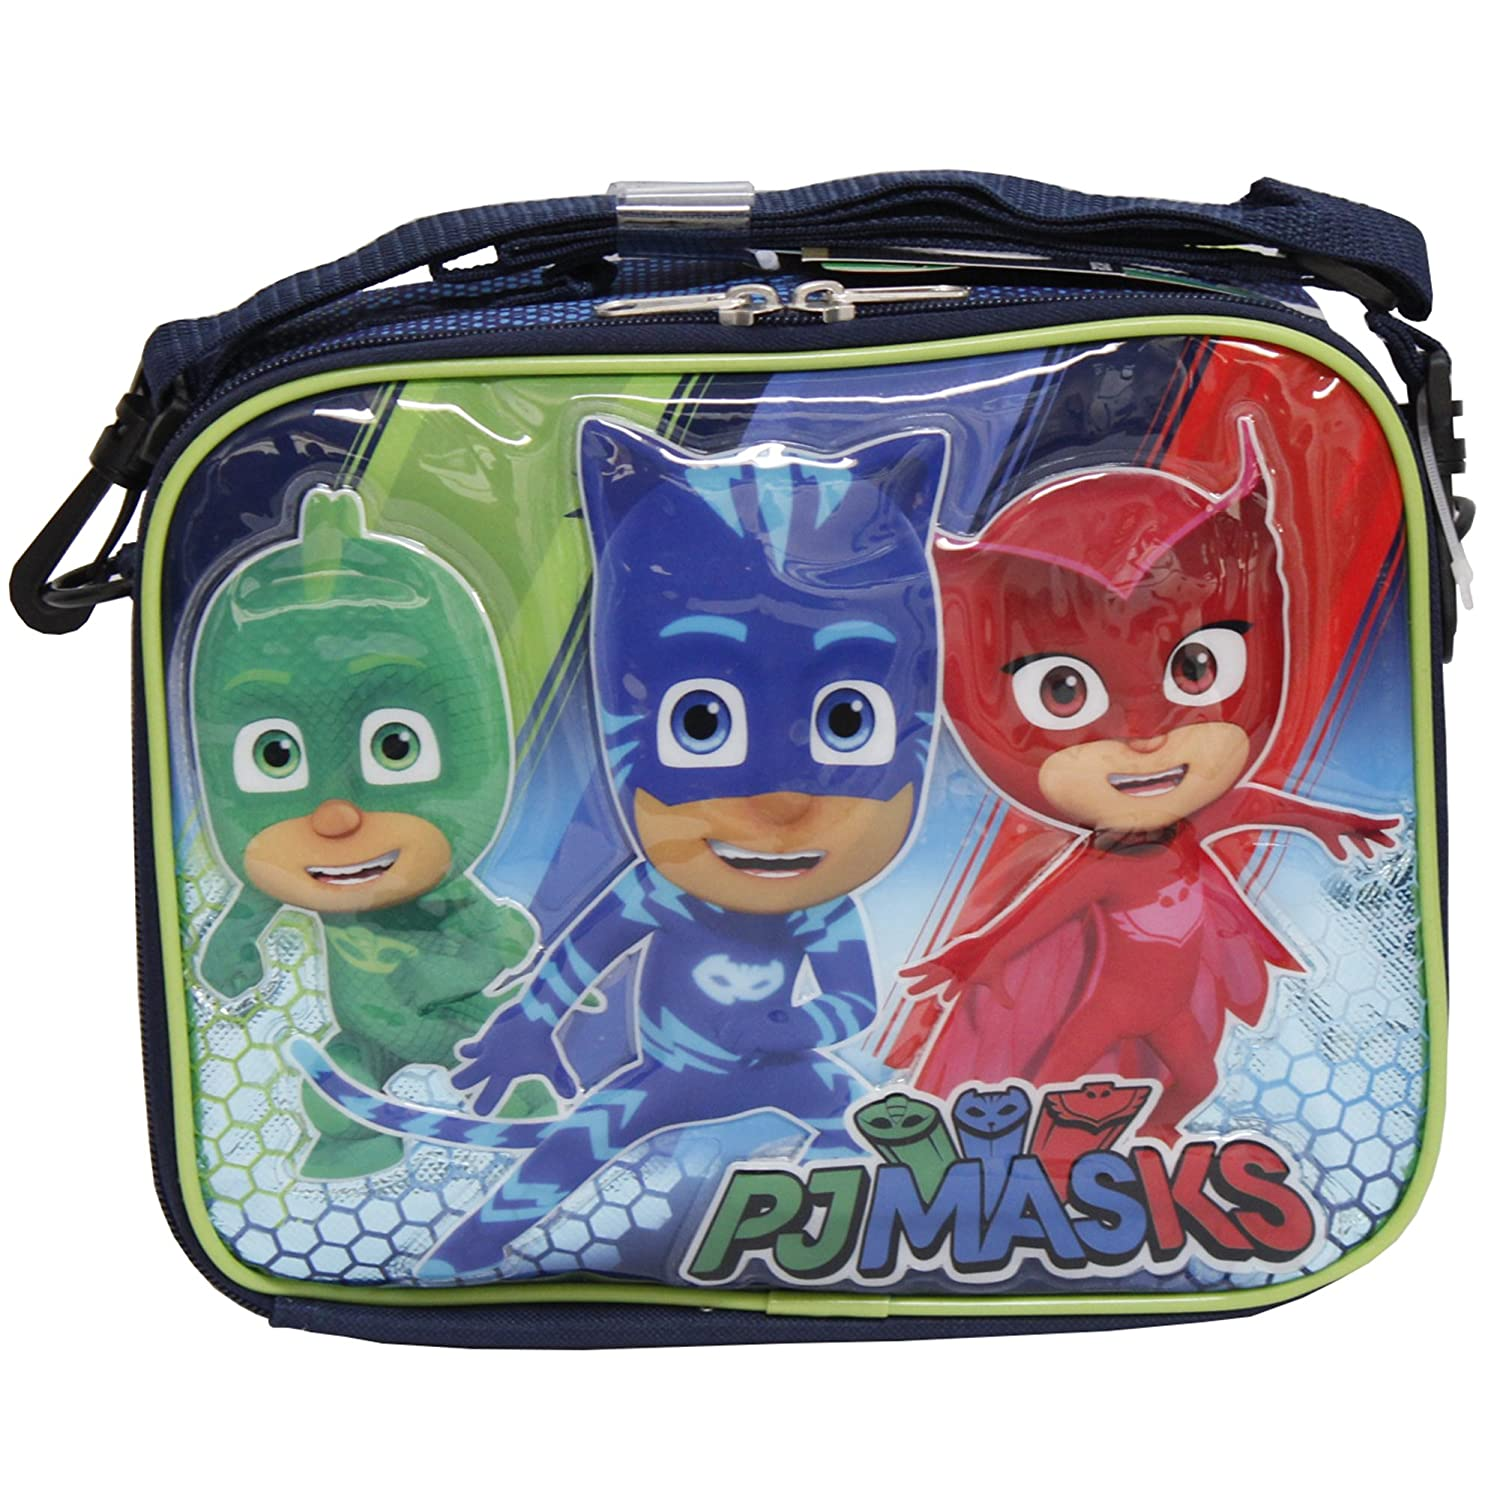 Amazon.com: PJ MASKS Gekko Catboy Owlette Soft Lunch kit bag box: Kitchen & Dining